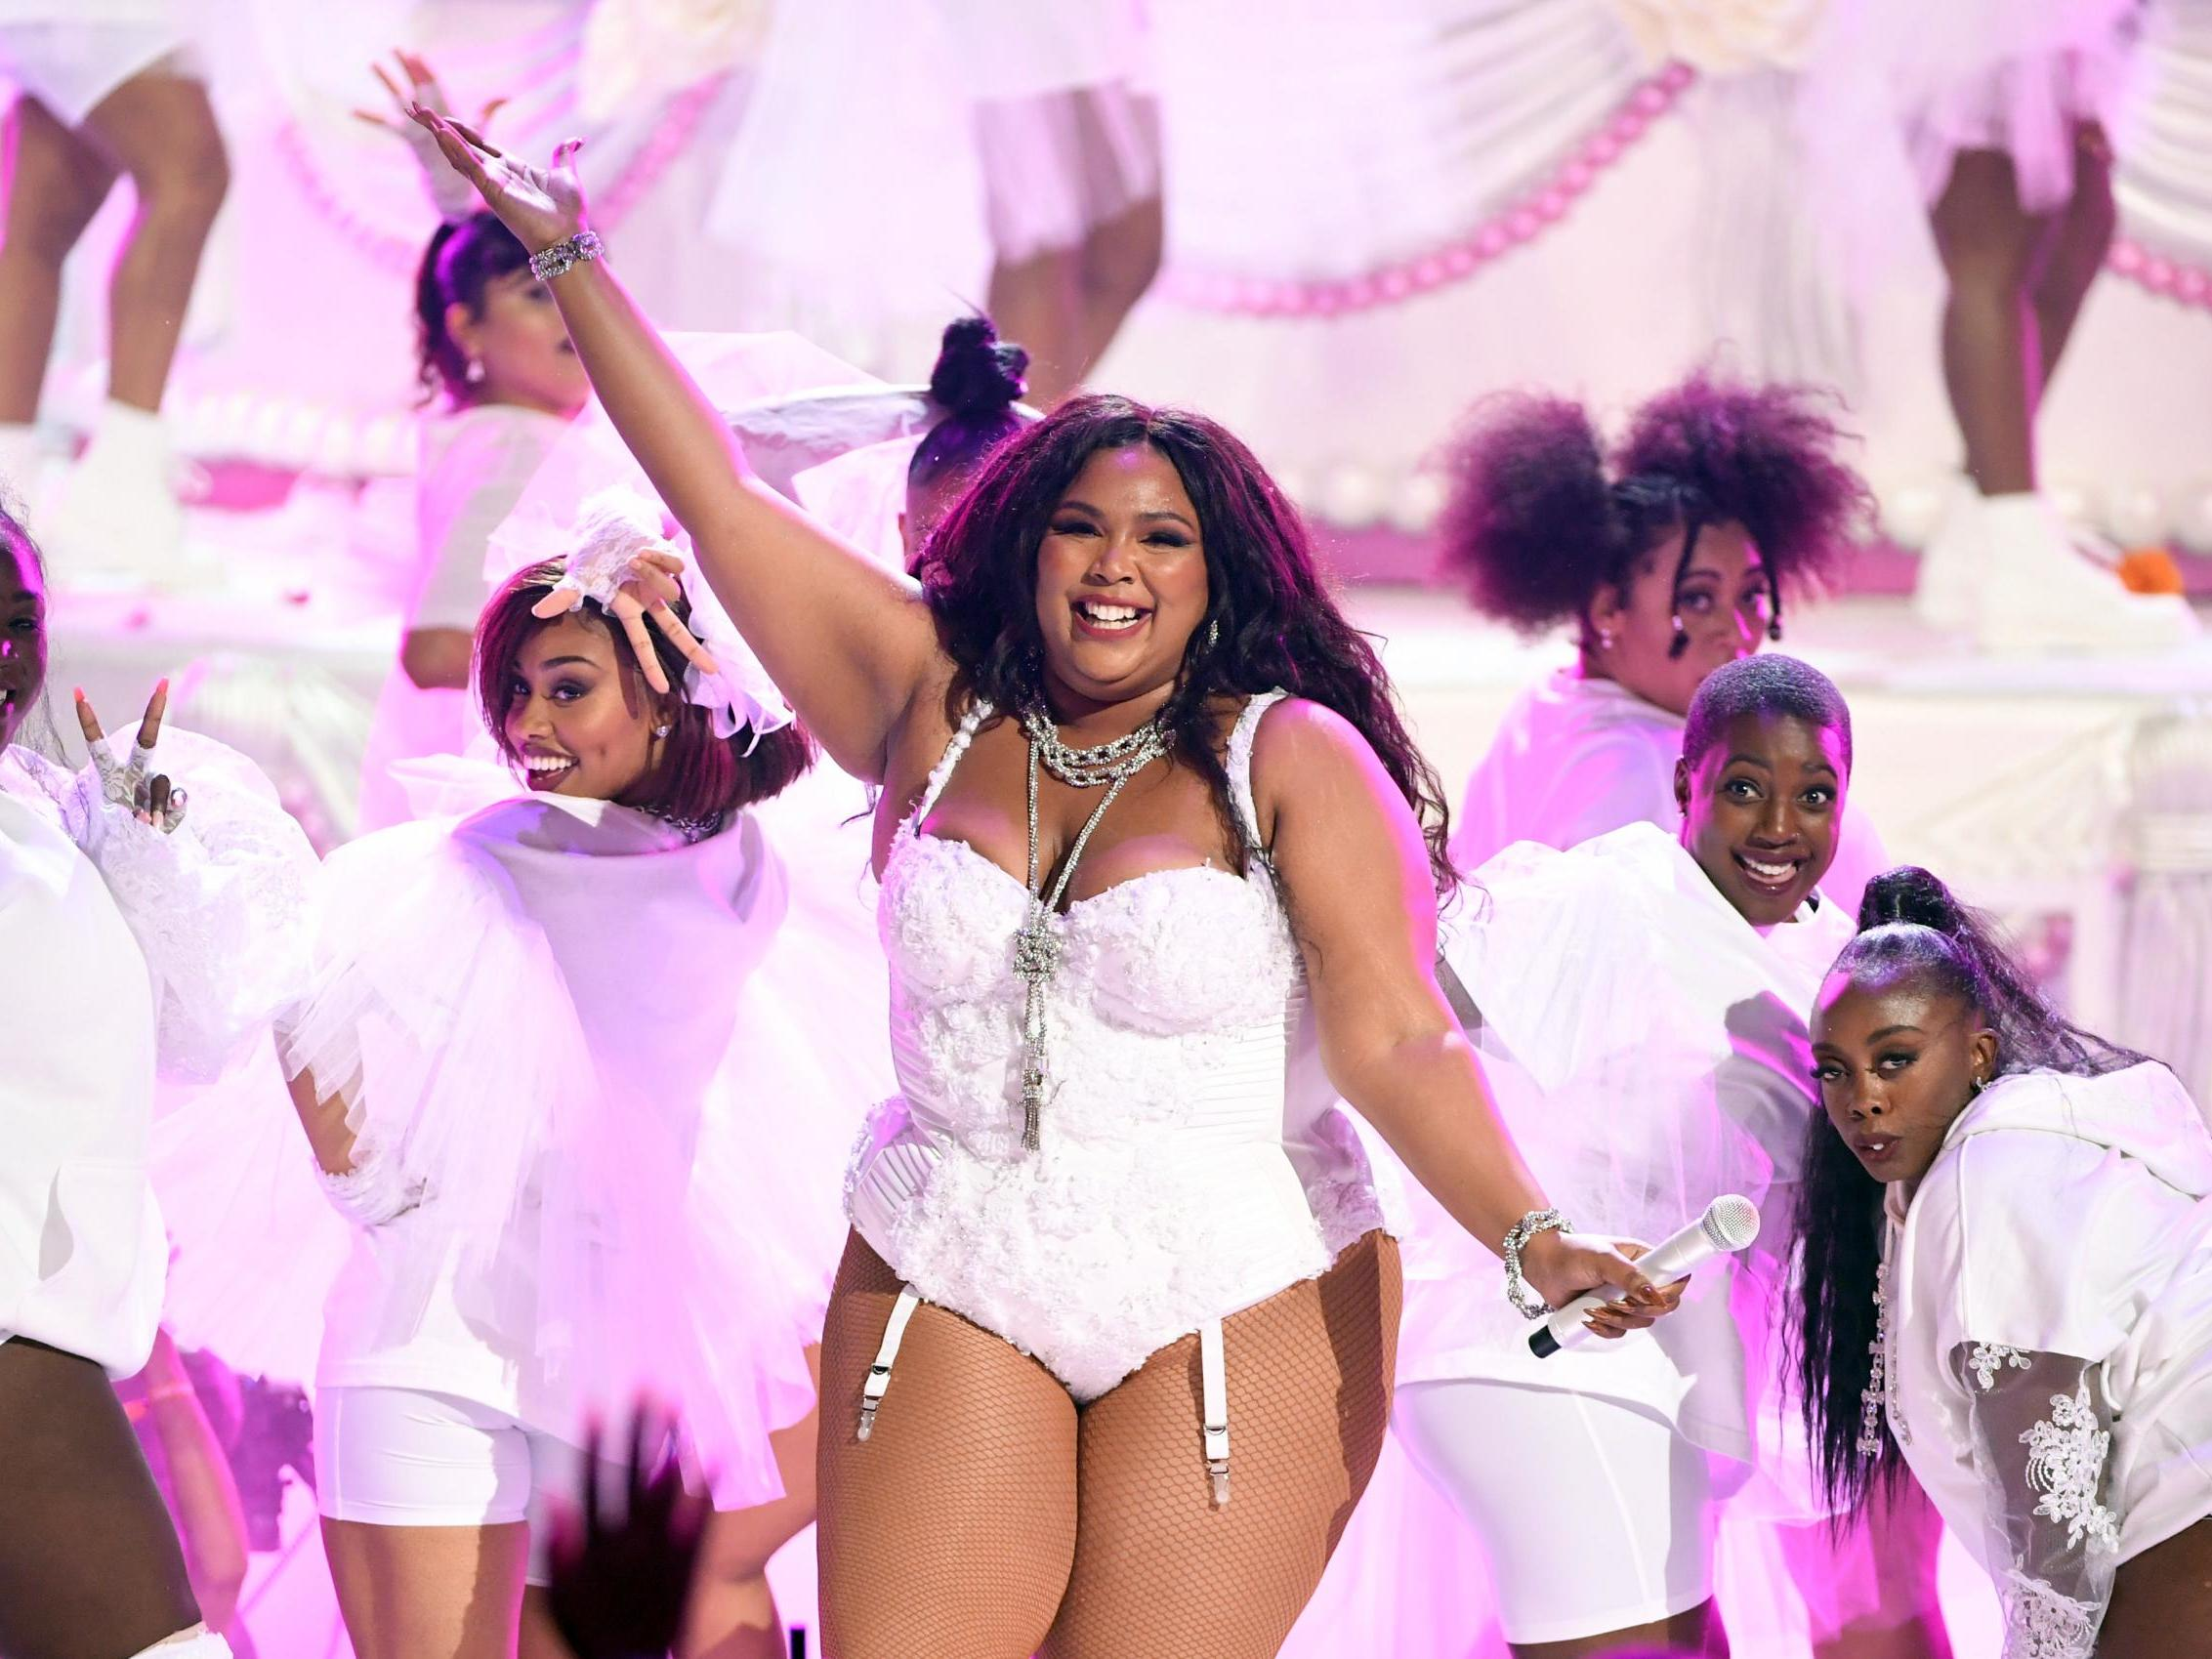 Lizzo says she is tired of talking about her body: 'It's not a trend'